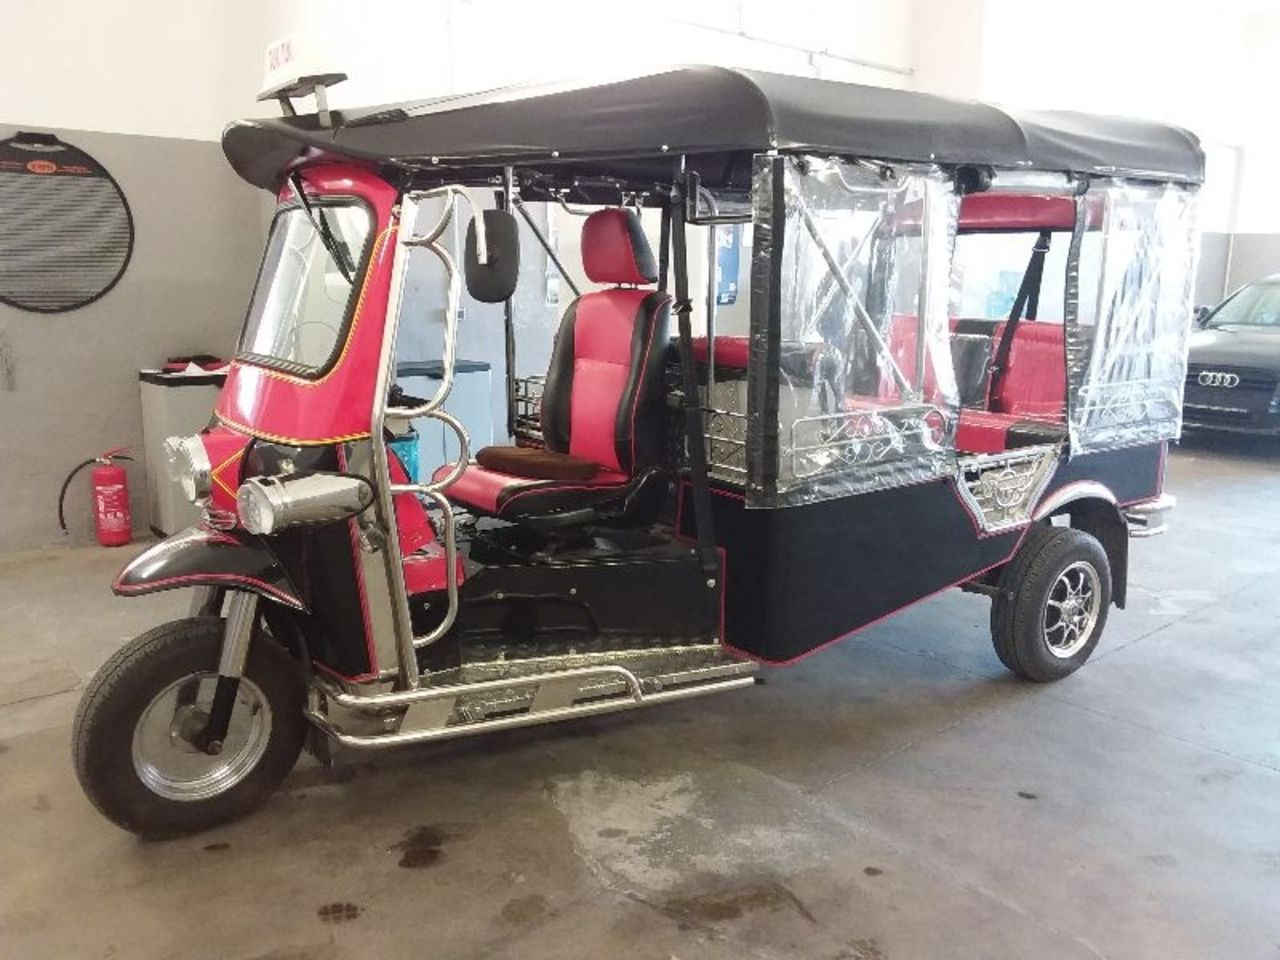 tuk tuk party auto 2 0. Black Bedroom Furniture Sets. Home Design Ideas